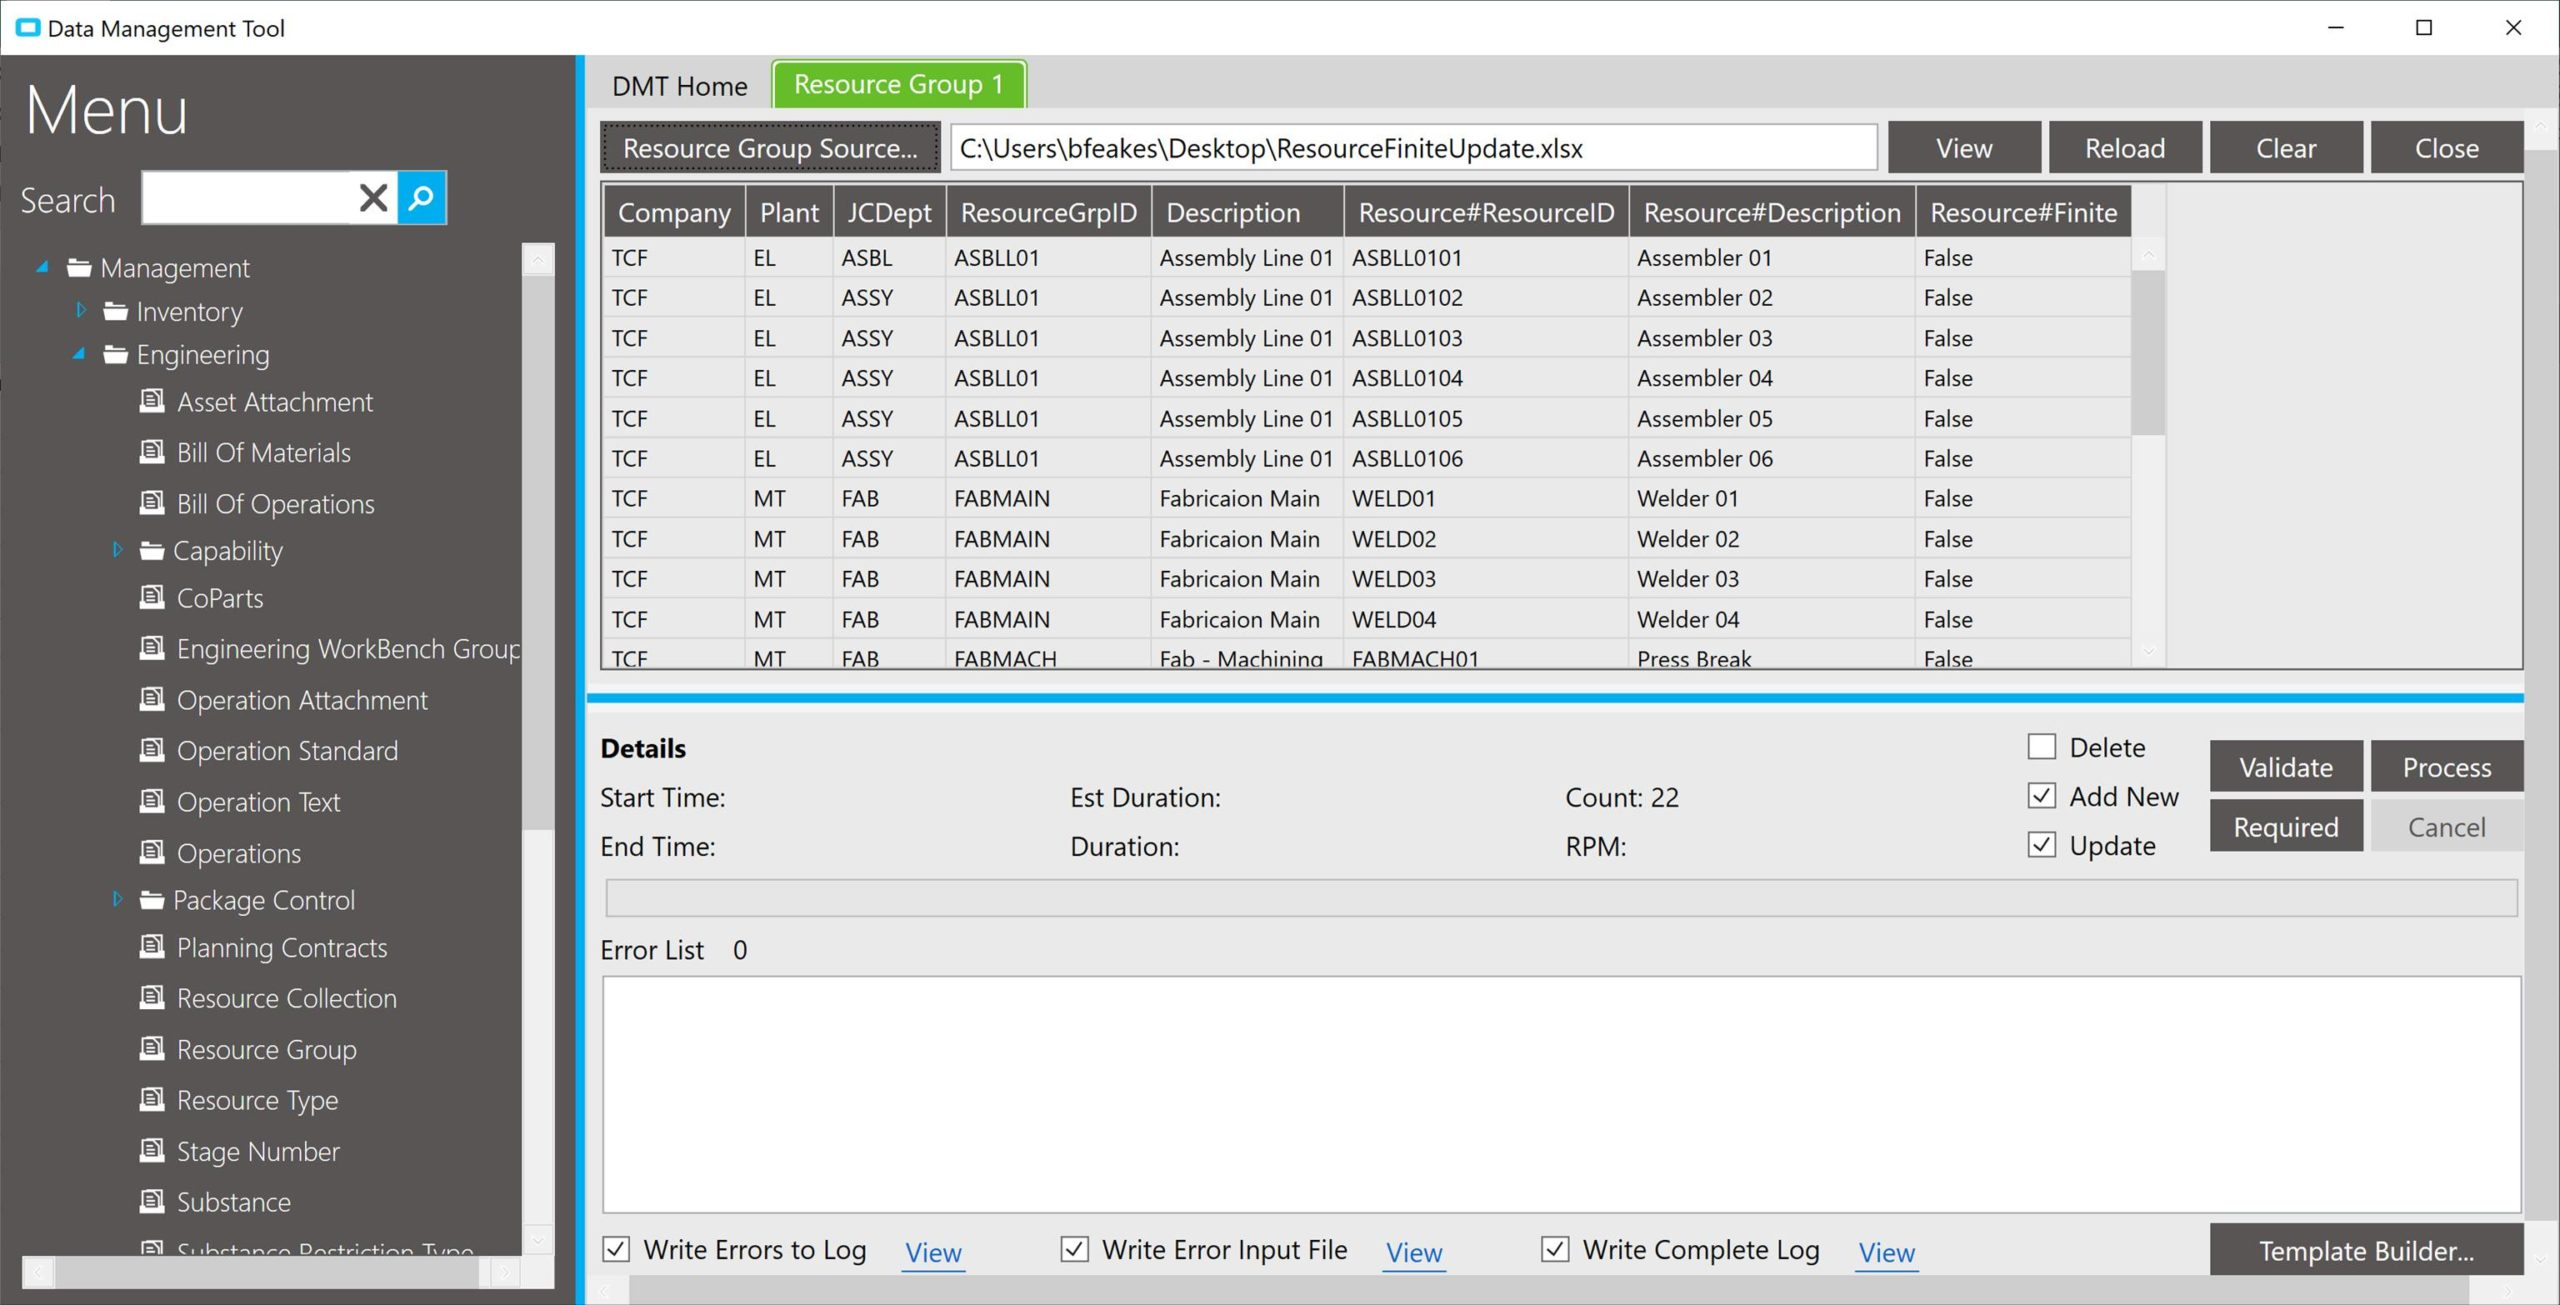 Multiple Table Updates in Epicor DMT Resource Group Finite Update